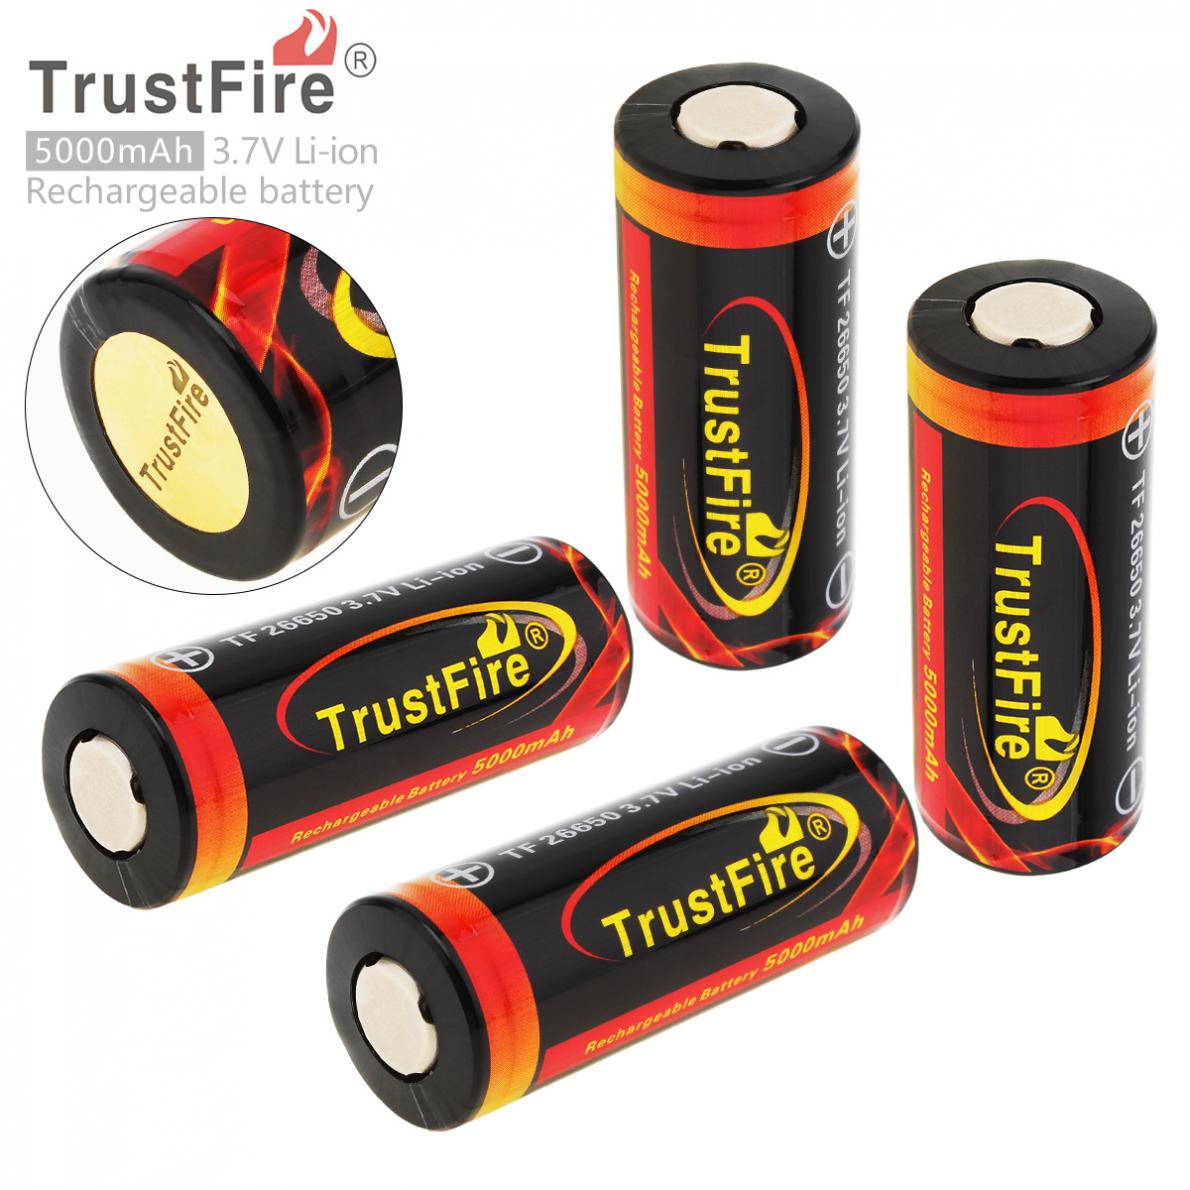 Newest Genuine Original Trustfire 26650 Protected 5000mAh 3.7V Li-ion Rechargeable Battery with Protected PCB 2pcs trustfire 18650 rechargeable battery 3 7v 2400mah li ion lithium battery with protected pcb portable battery storage box